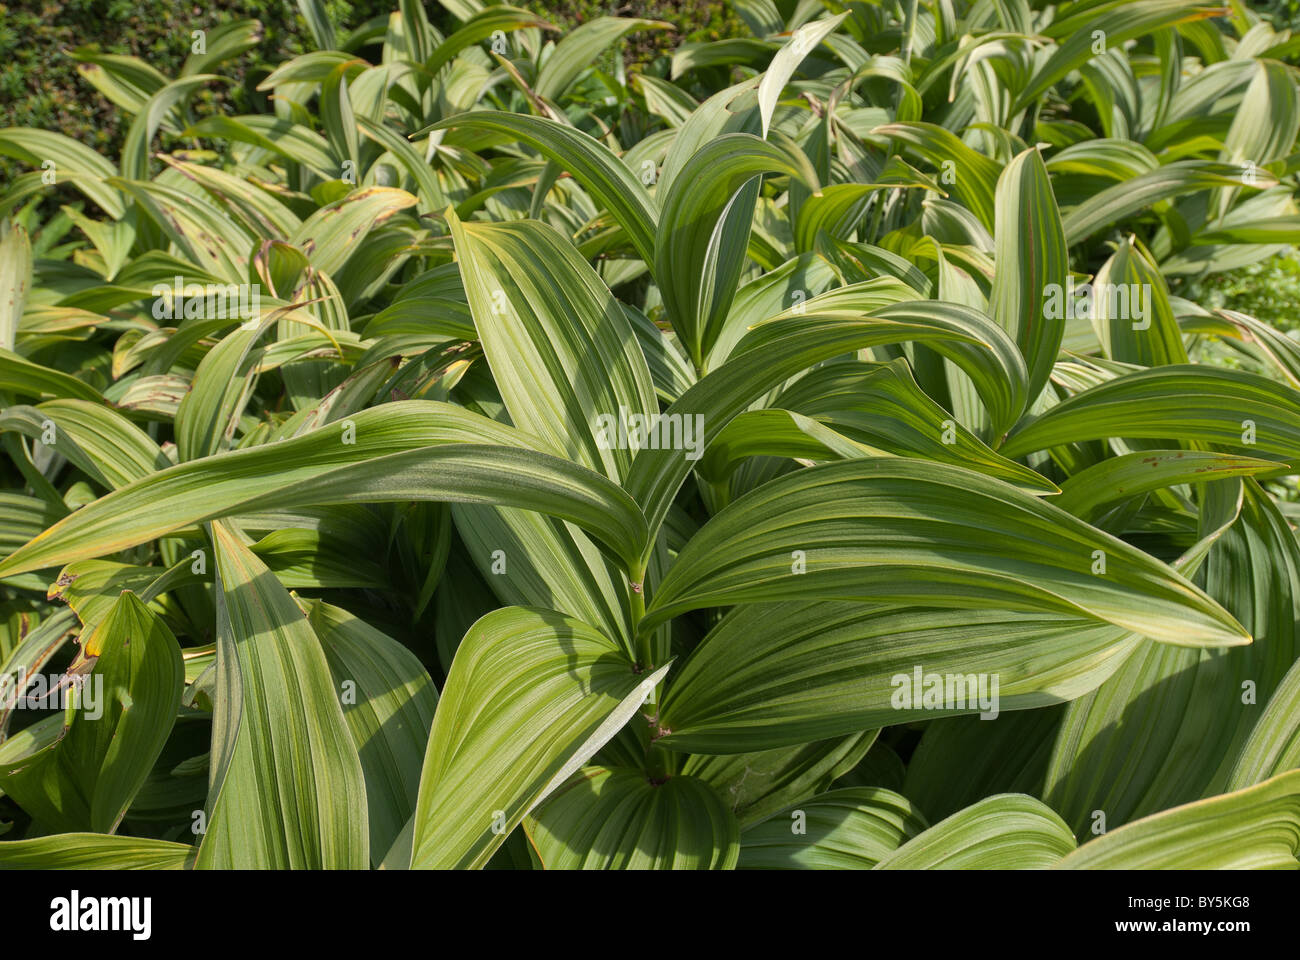 lily leaves new growth in spring time grown for the structure - Stock Image